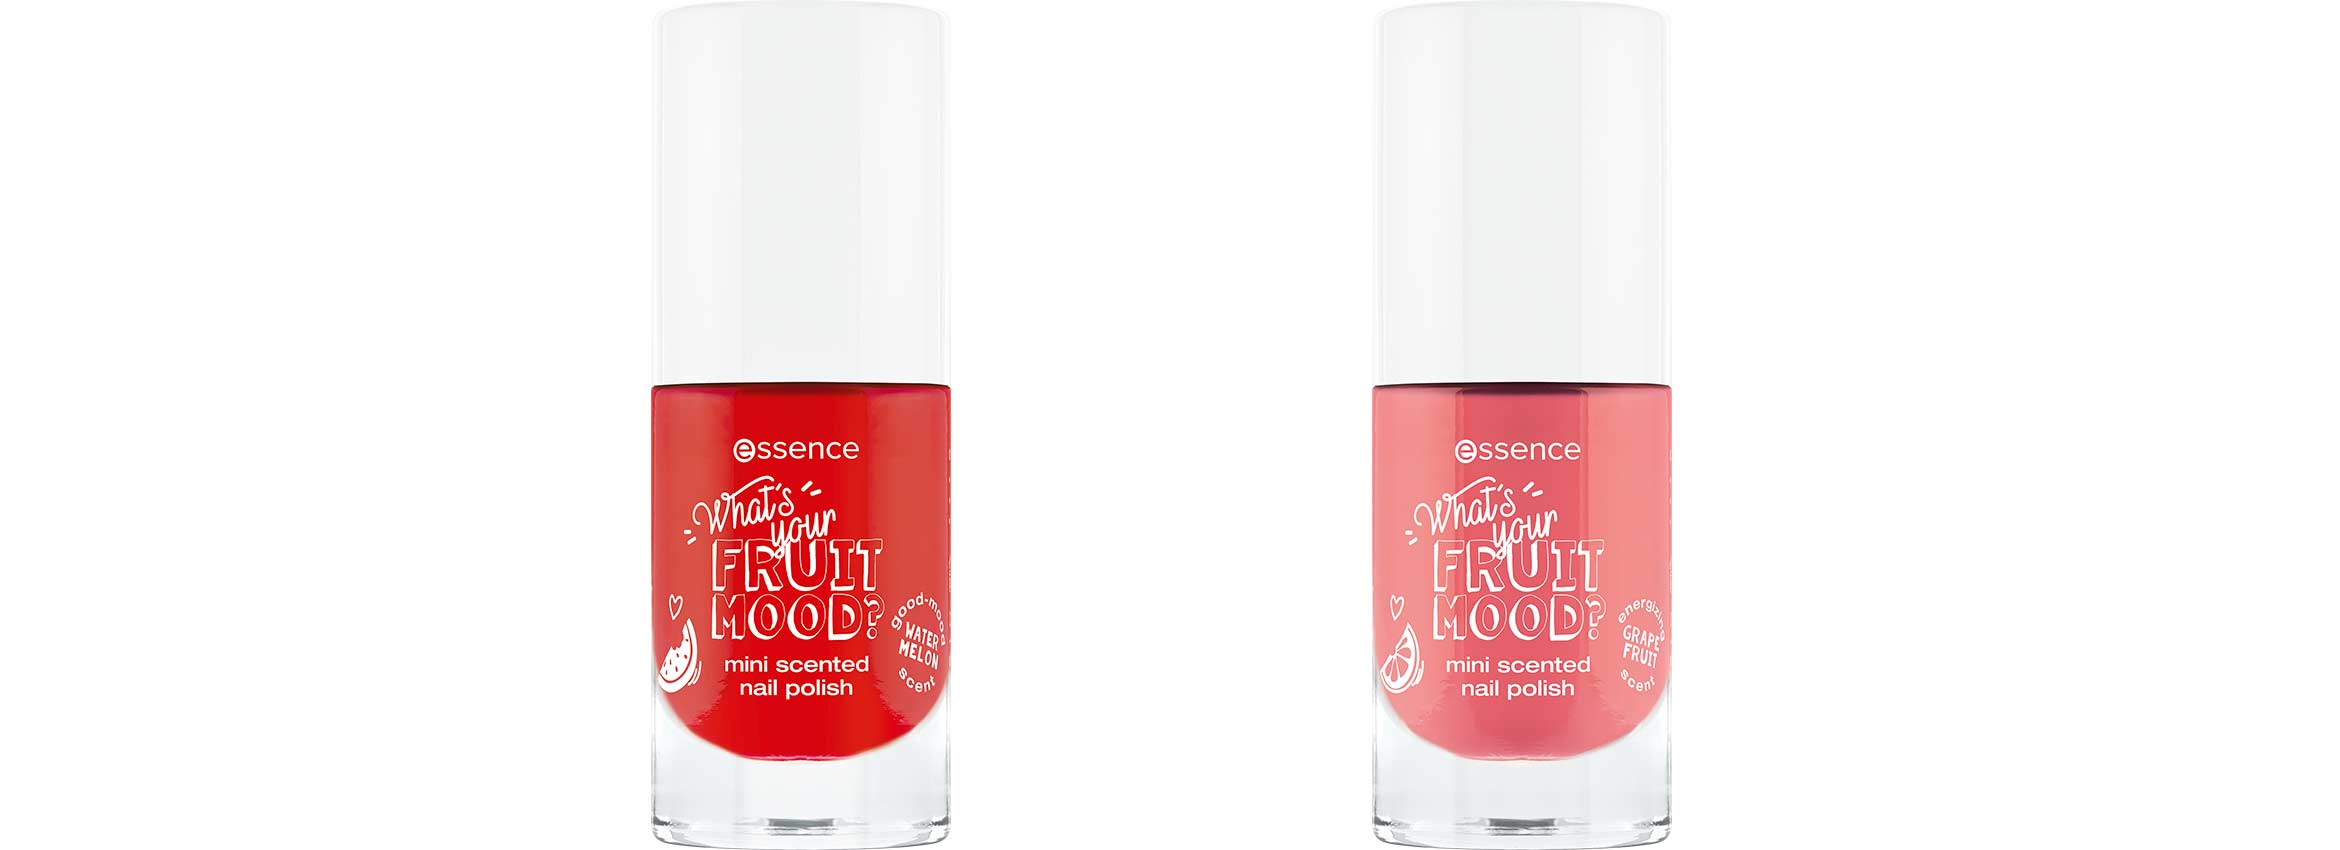 essence what's your fruit mood mini scented nail polish